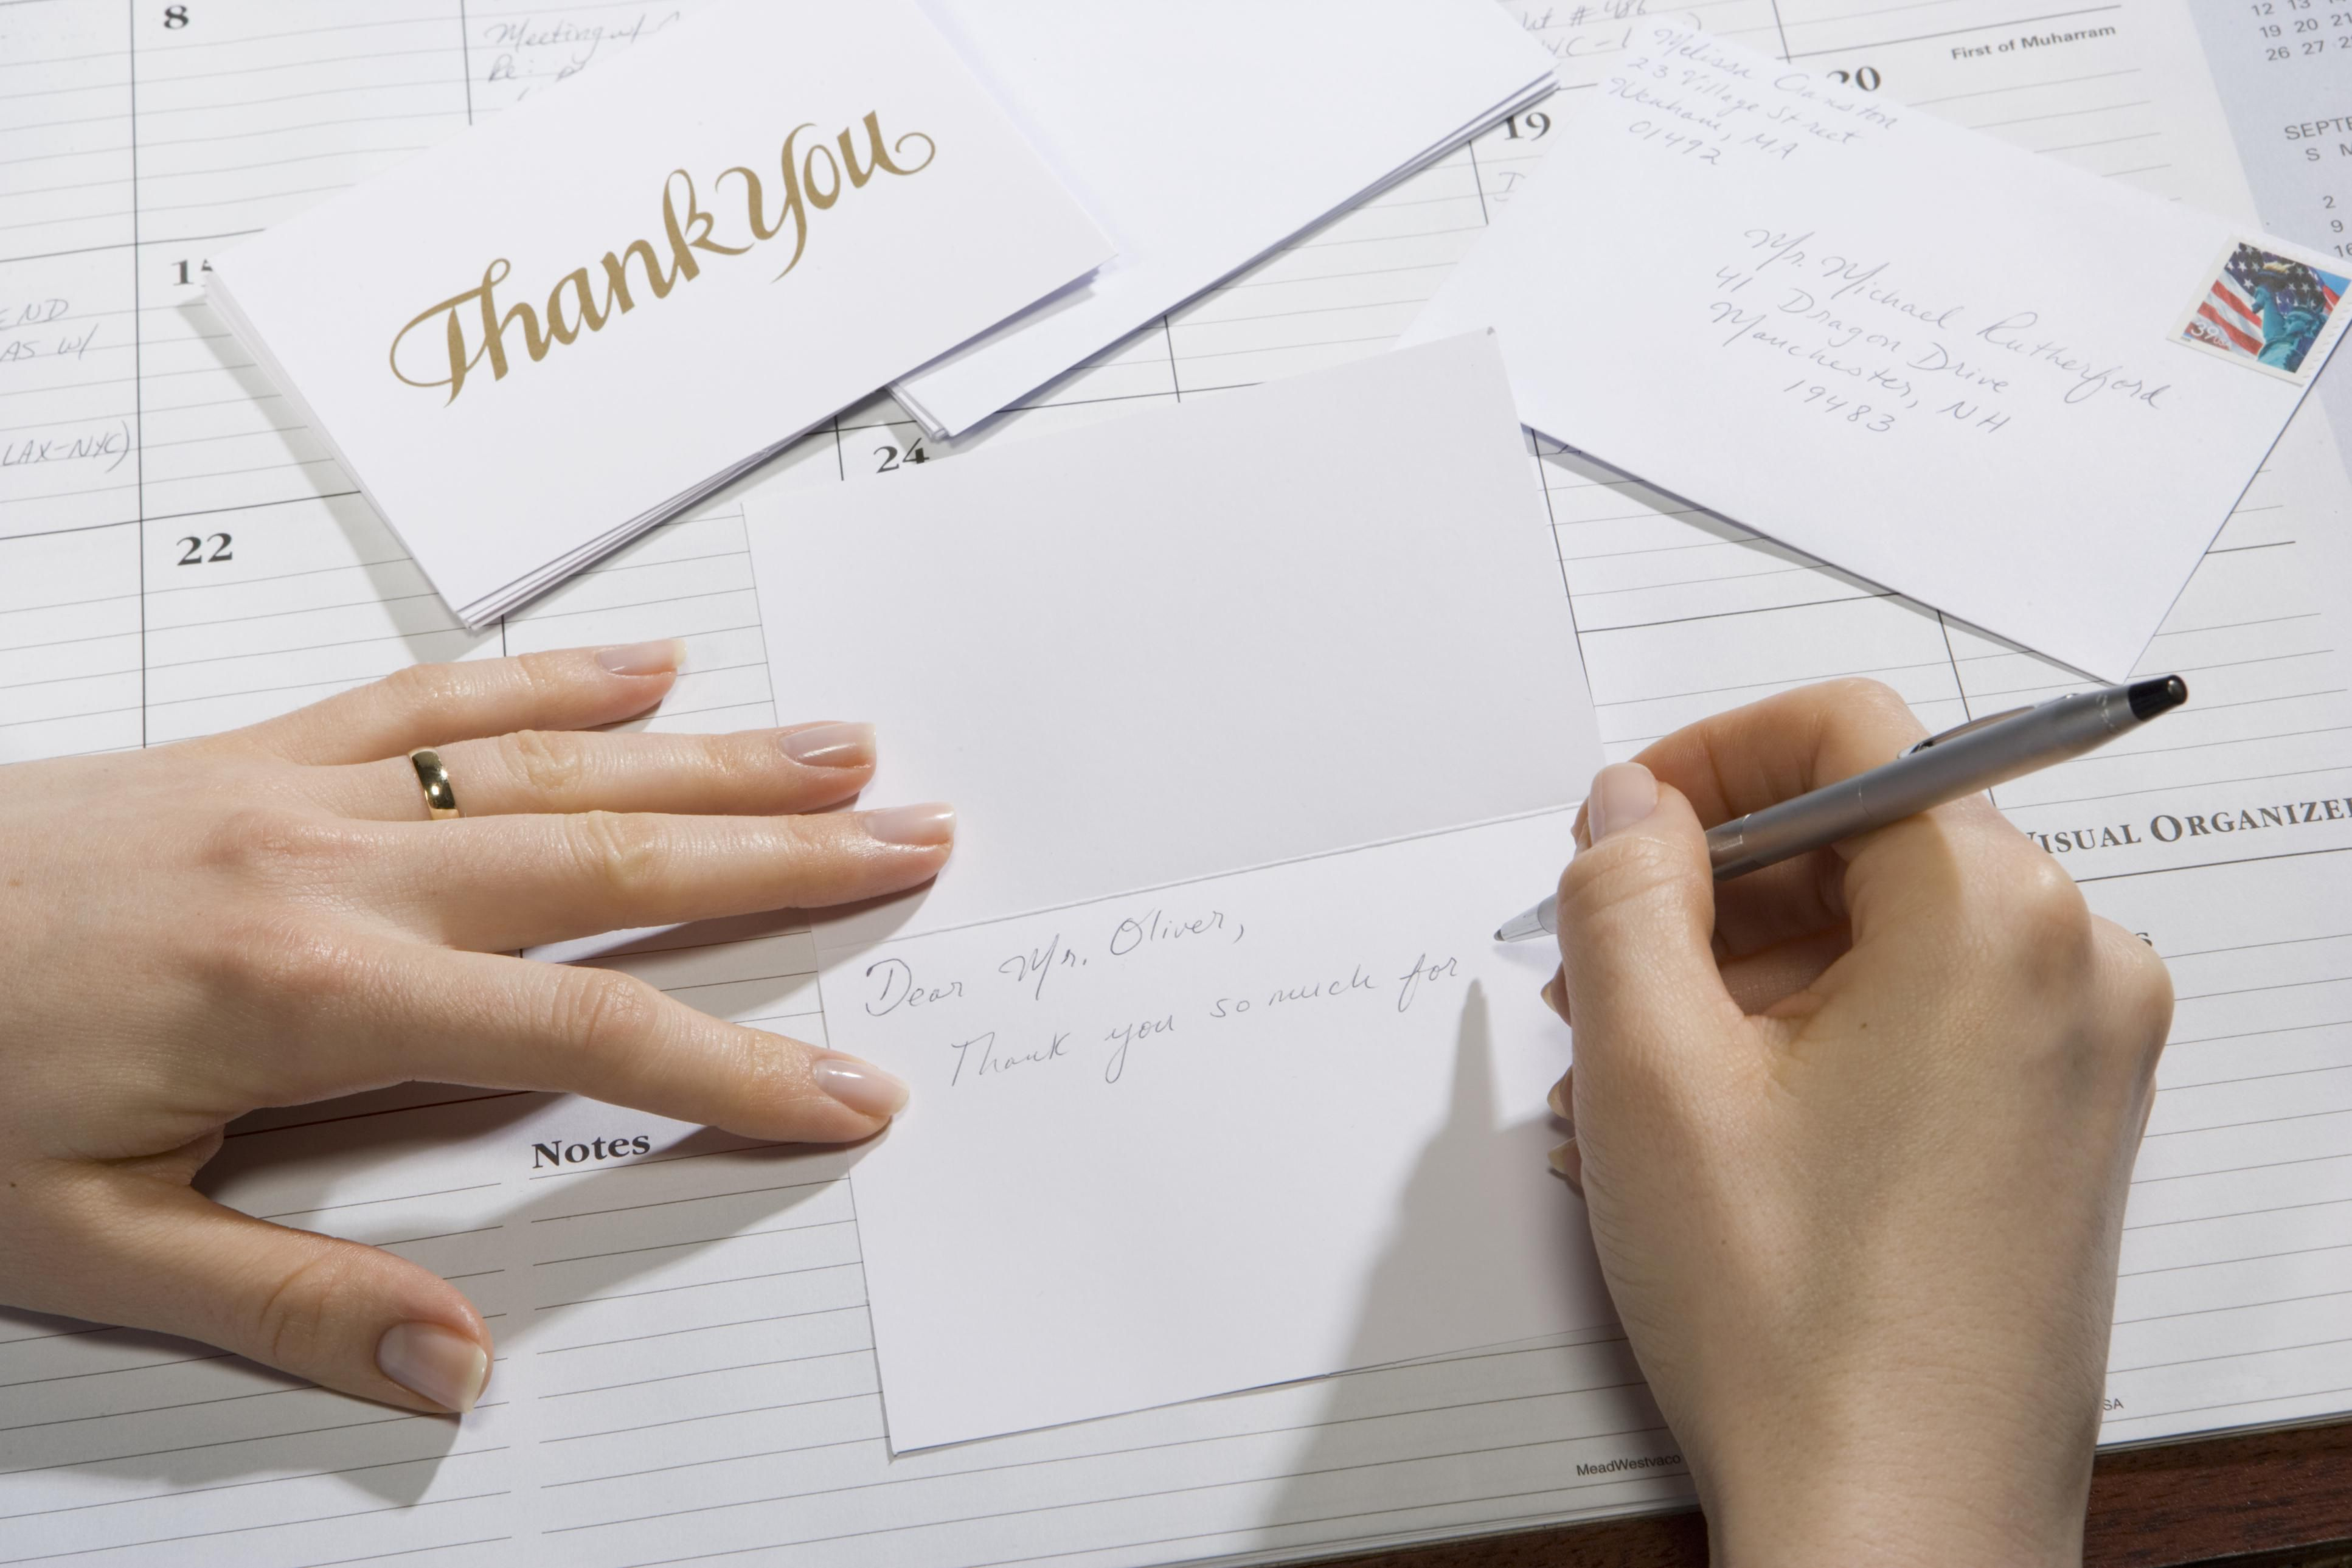 Sample Employee Thank You Letters From the Supervisor